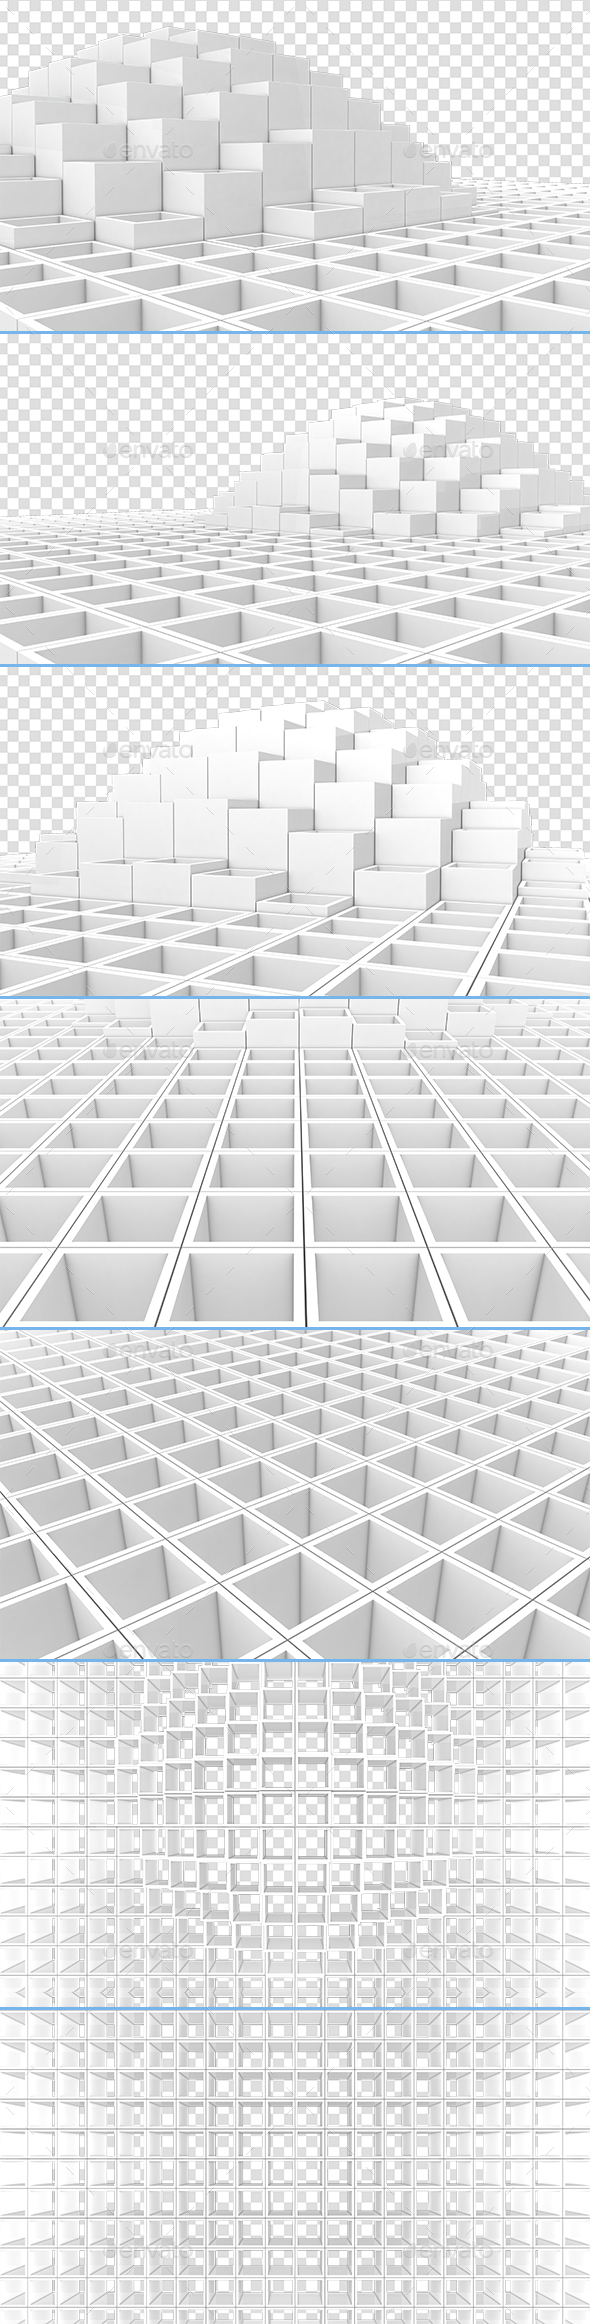 3D Square Background - 3D Backgrounds